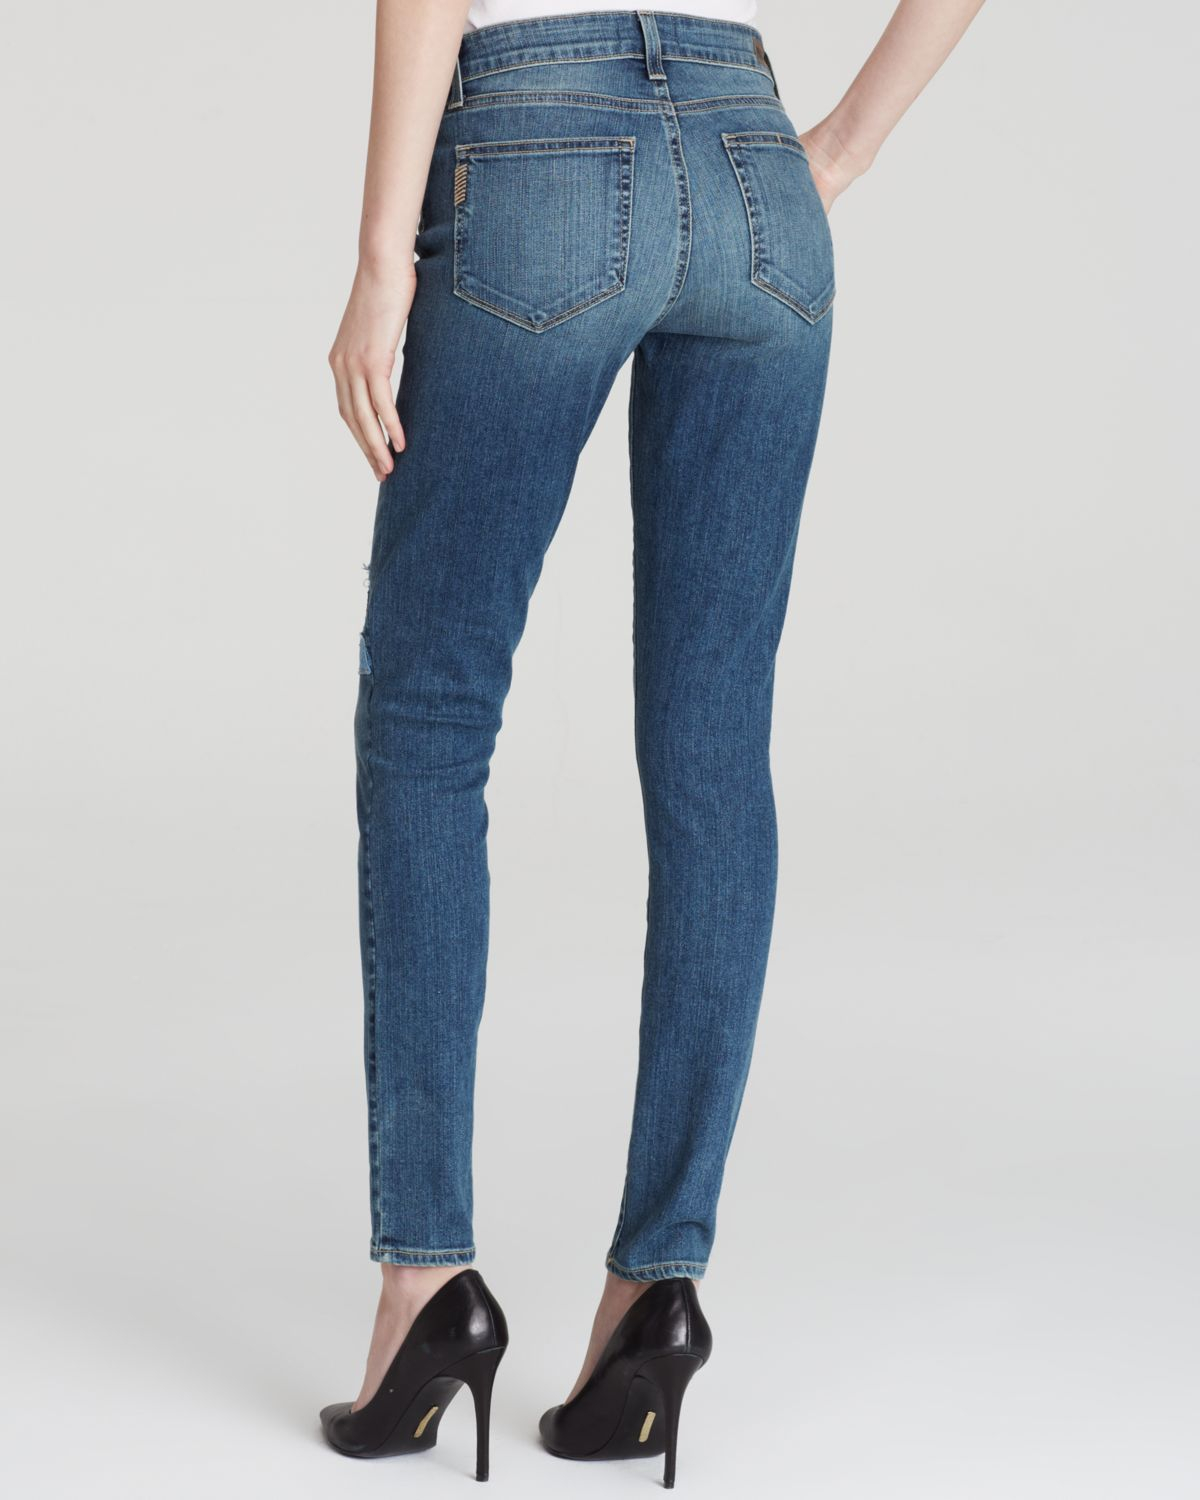 Get the best deals on destructed bootcut jeans and save up to 70% off at Poshmark now! Whatever you're shopping for, we've got it.